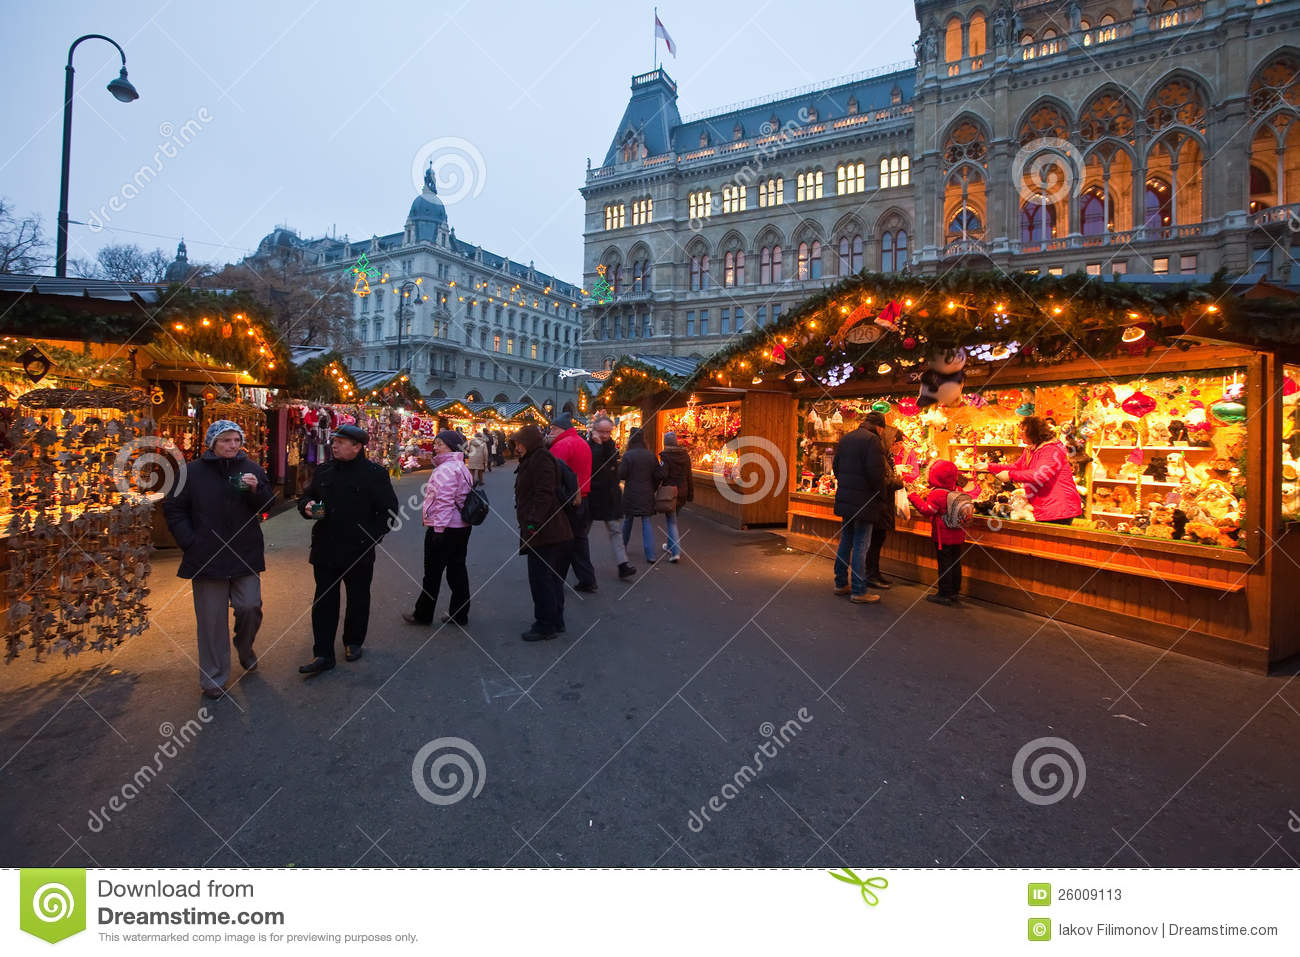 March de no l vienne autriche photo stock ditorial image 26009113 - Vienne marche de noel ...